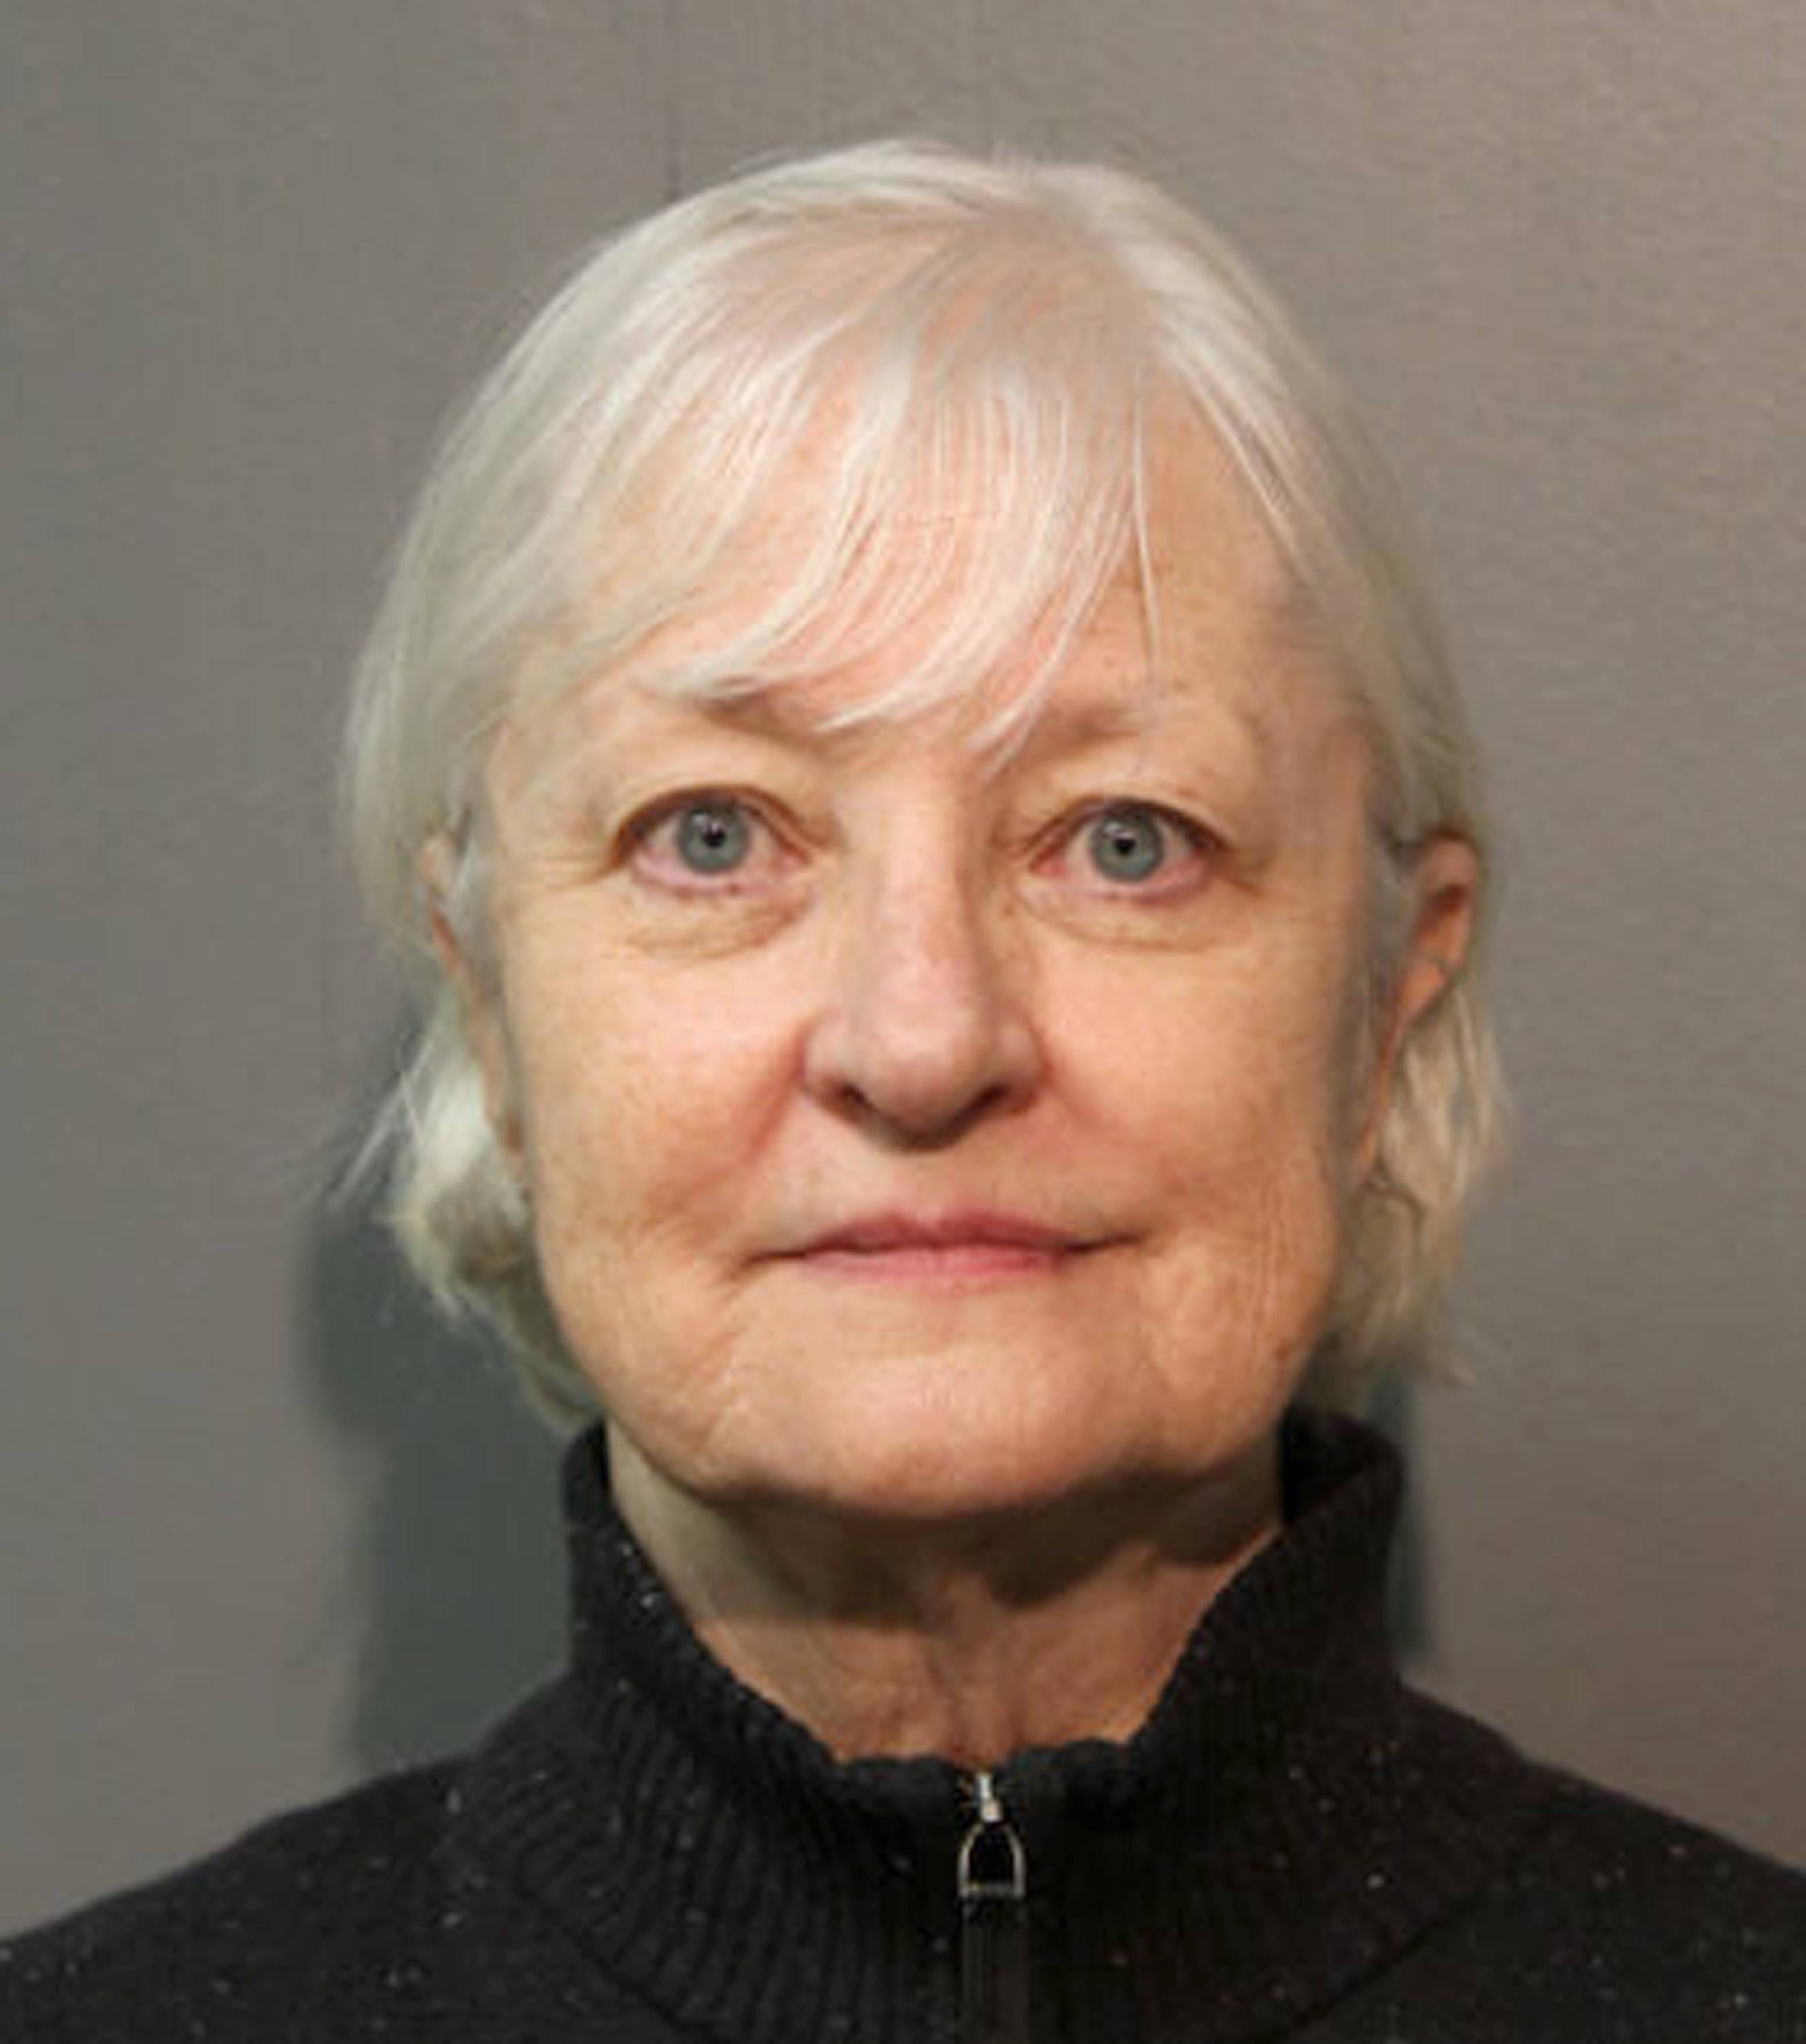 'Serial stowaway' from Grayslake arrested again at O'Hare